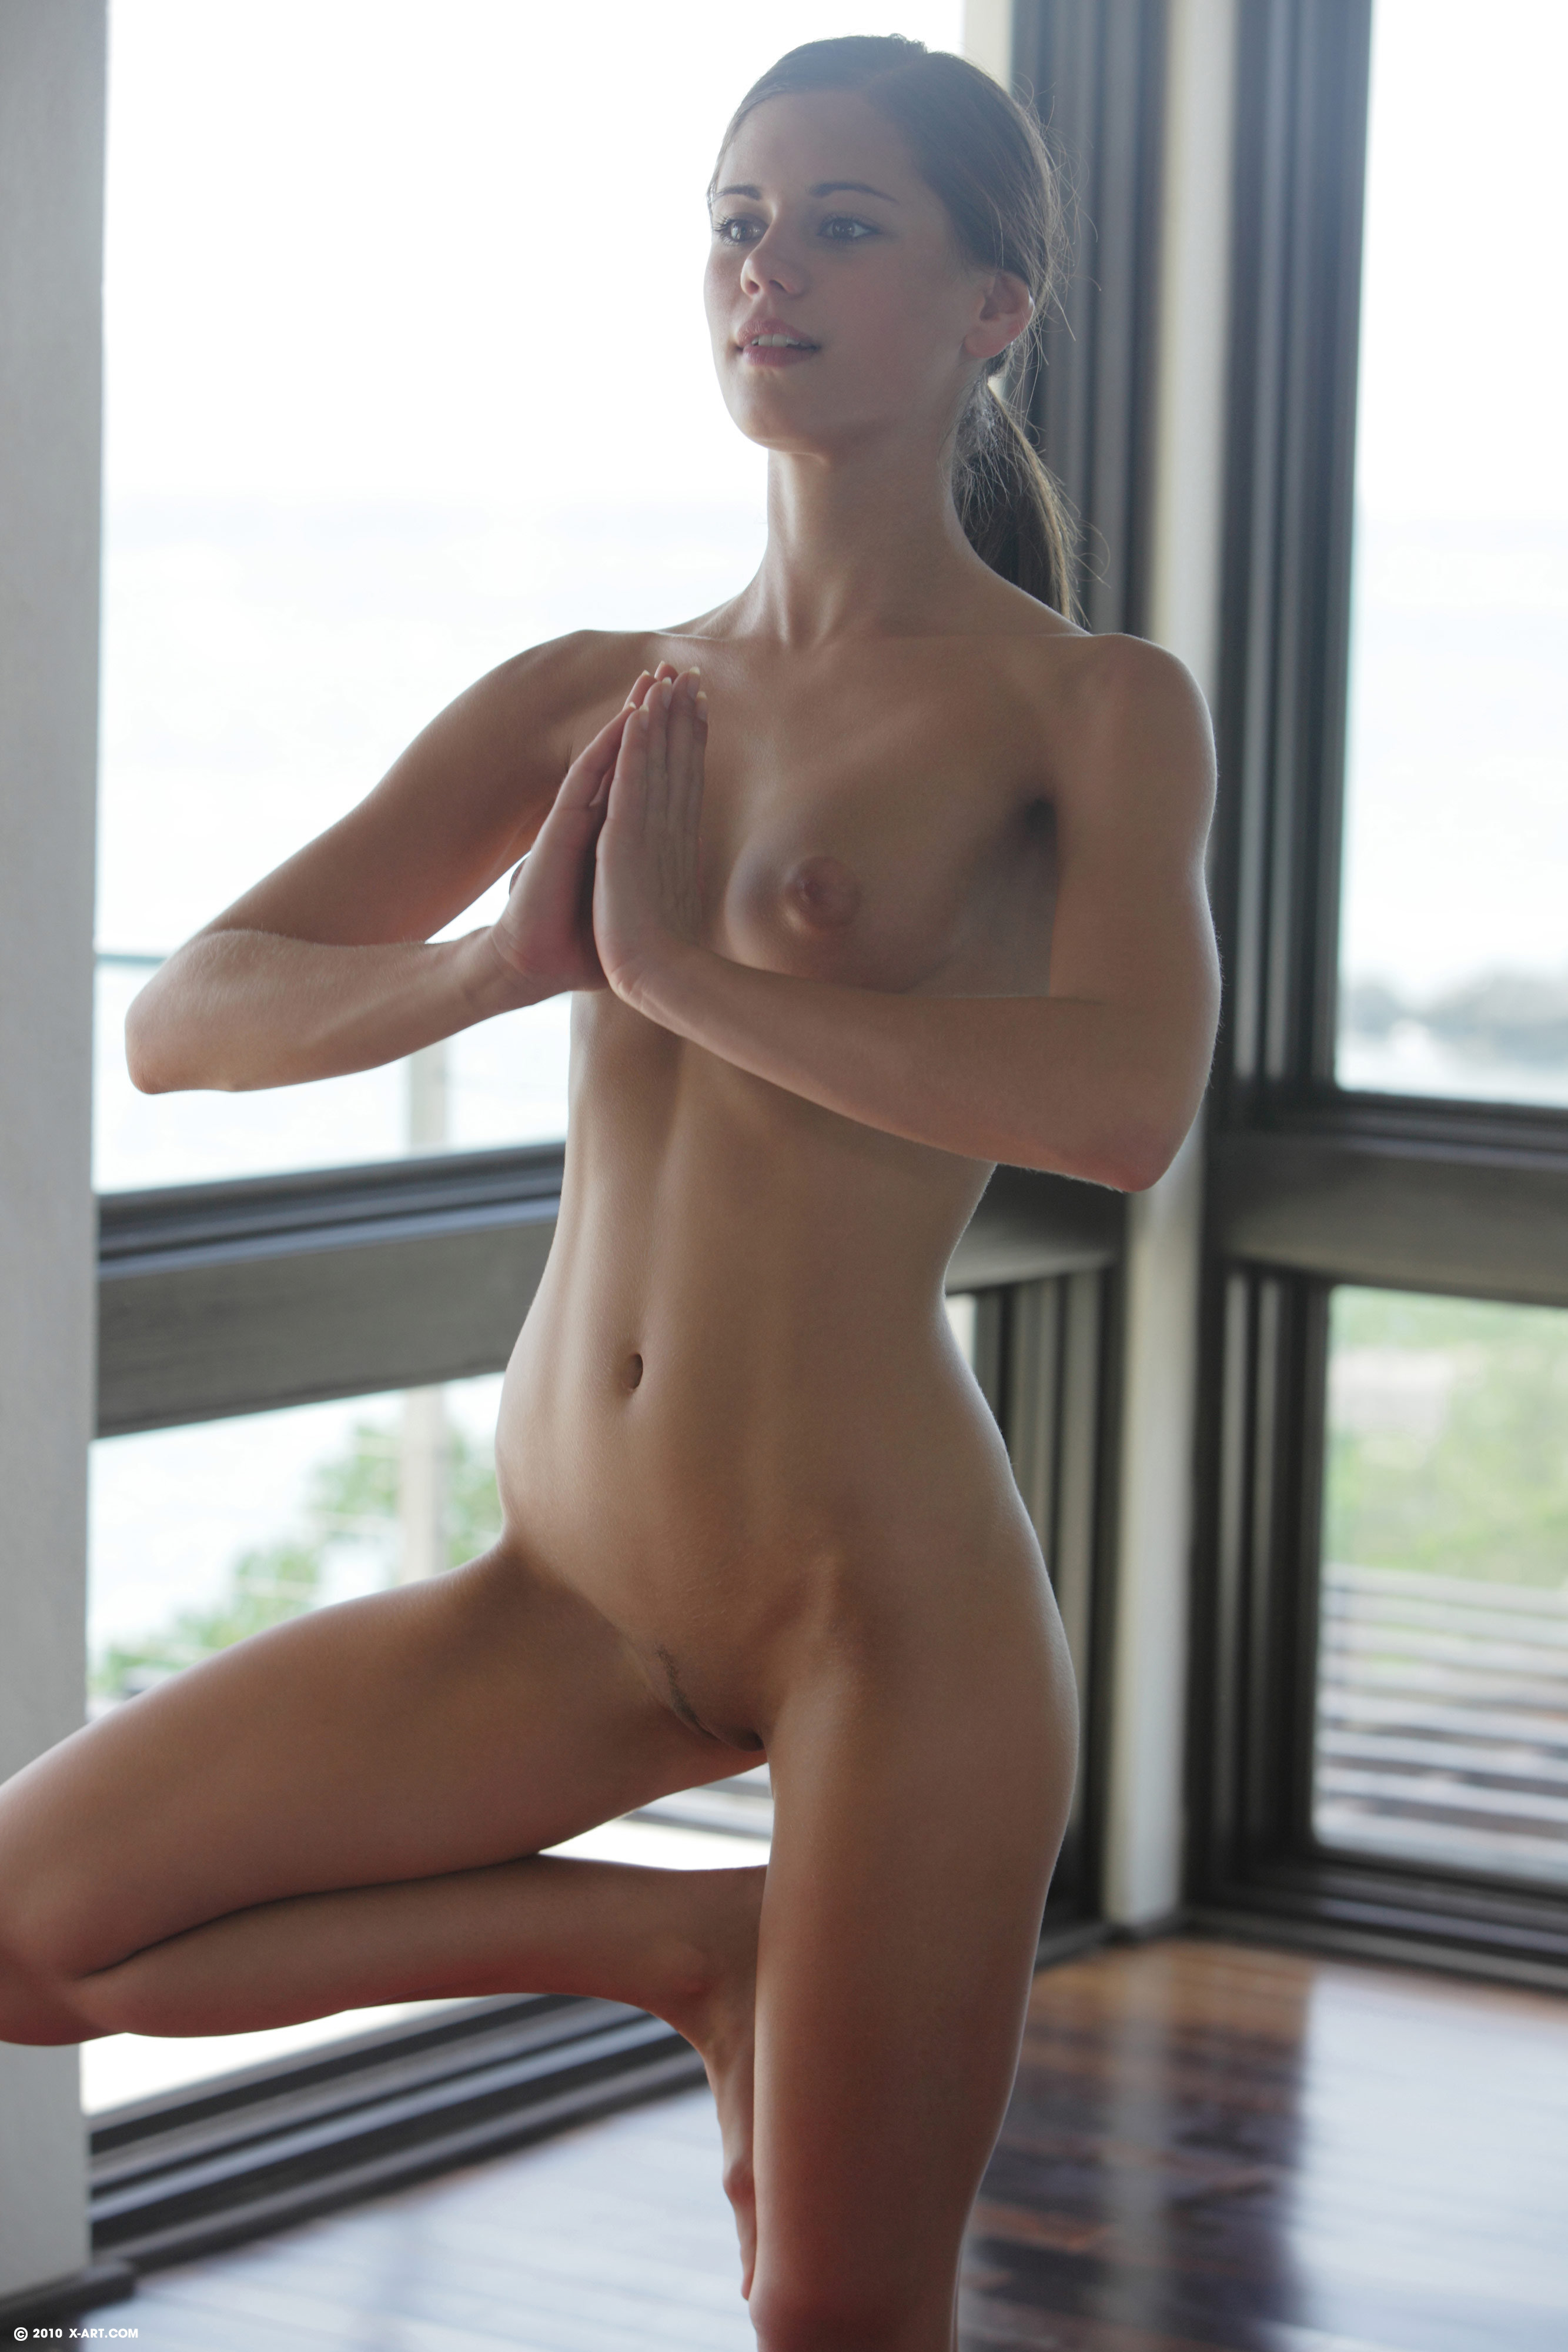 pics of pinkyxxx naked